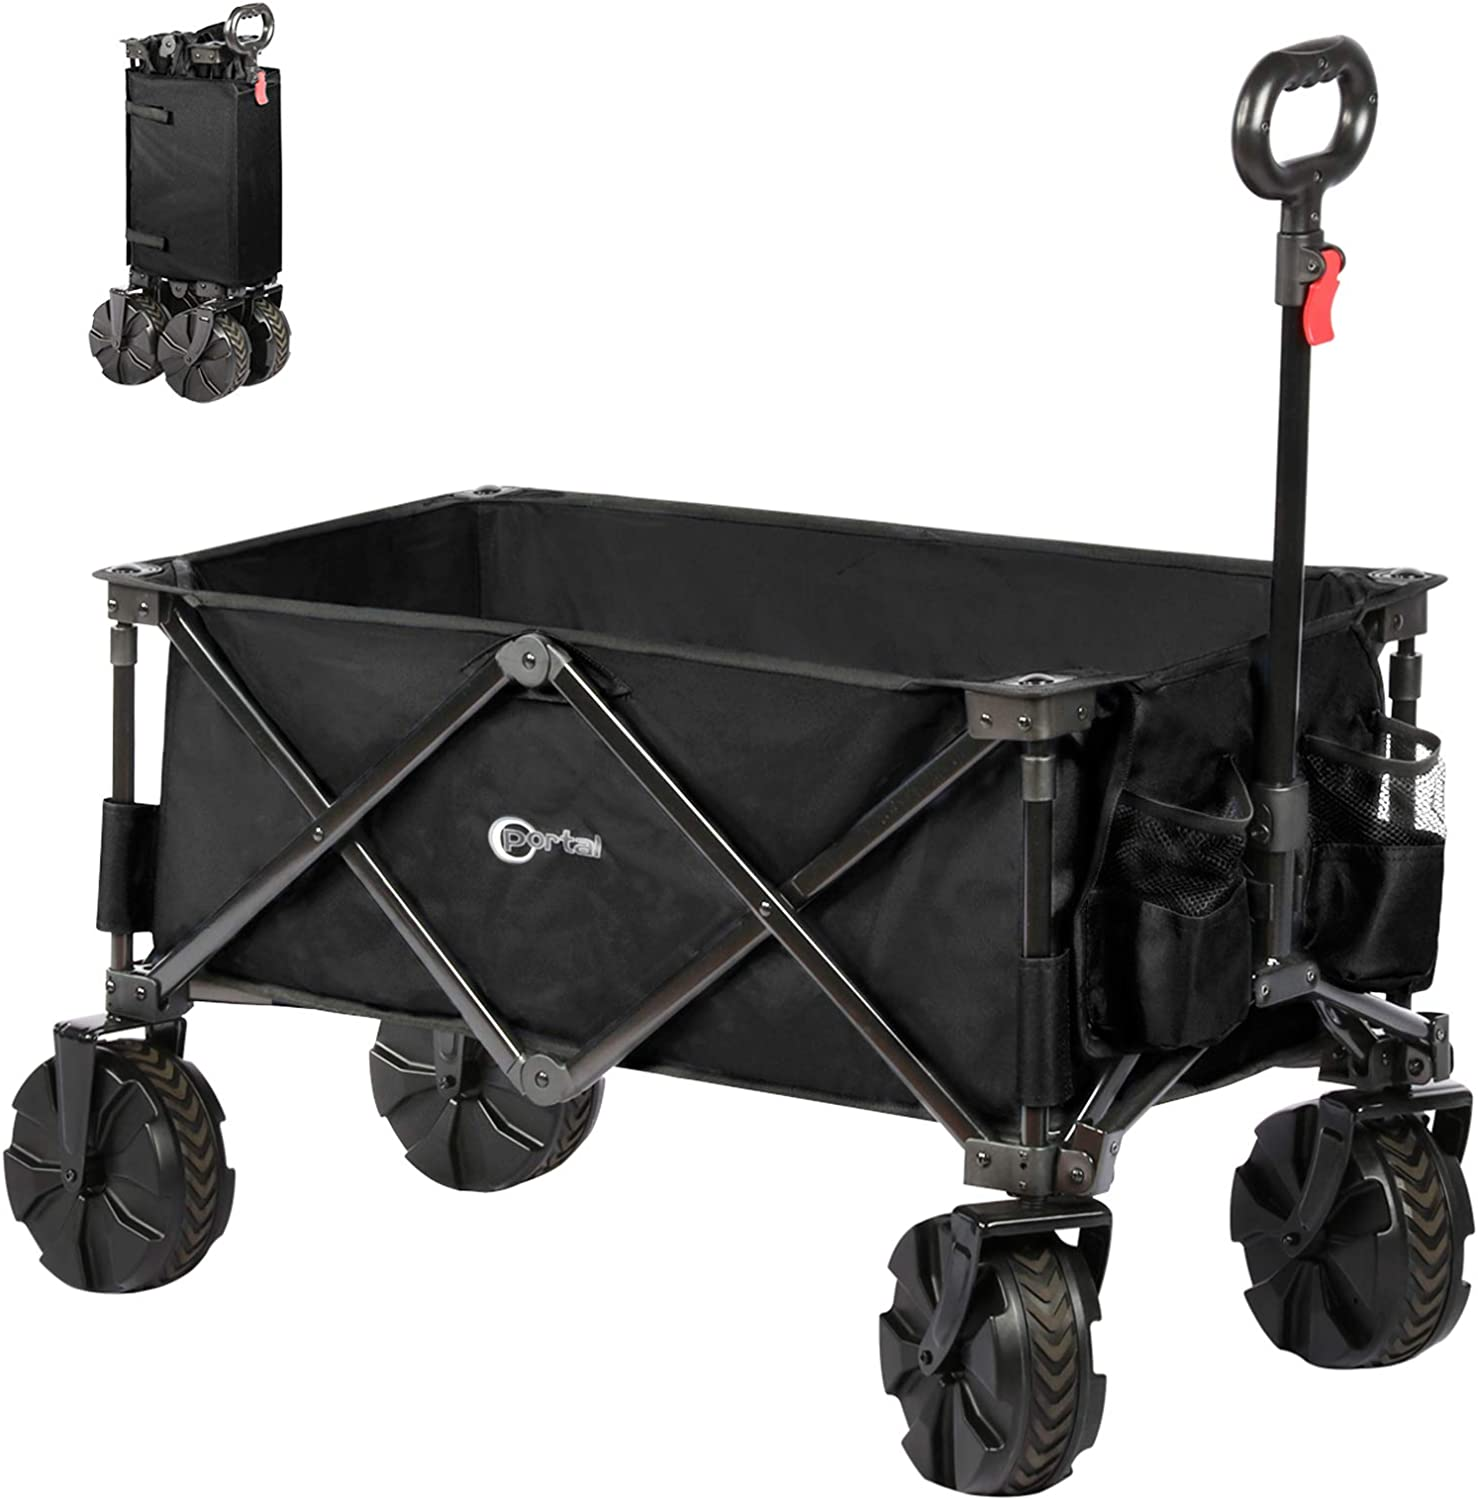 Portal Collapsible Folding Utility Wagon Camping Cart for Garden Park Picnic with 8